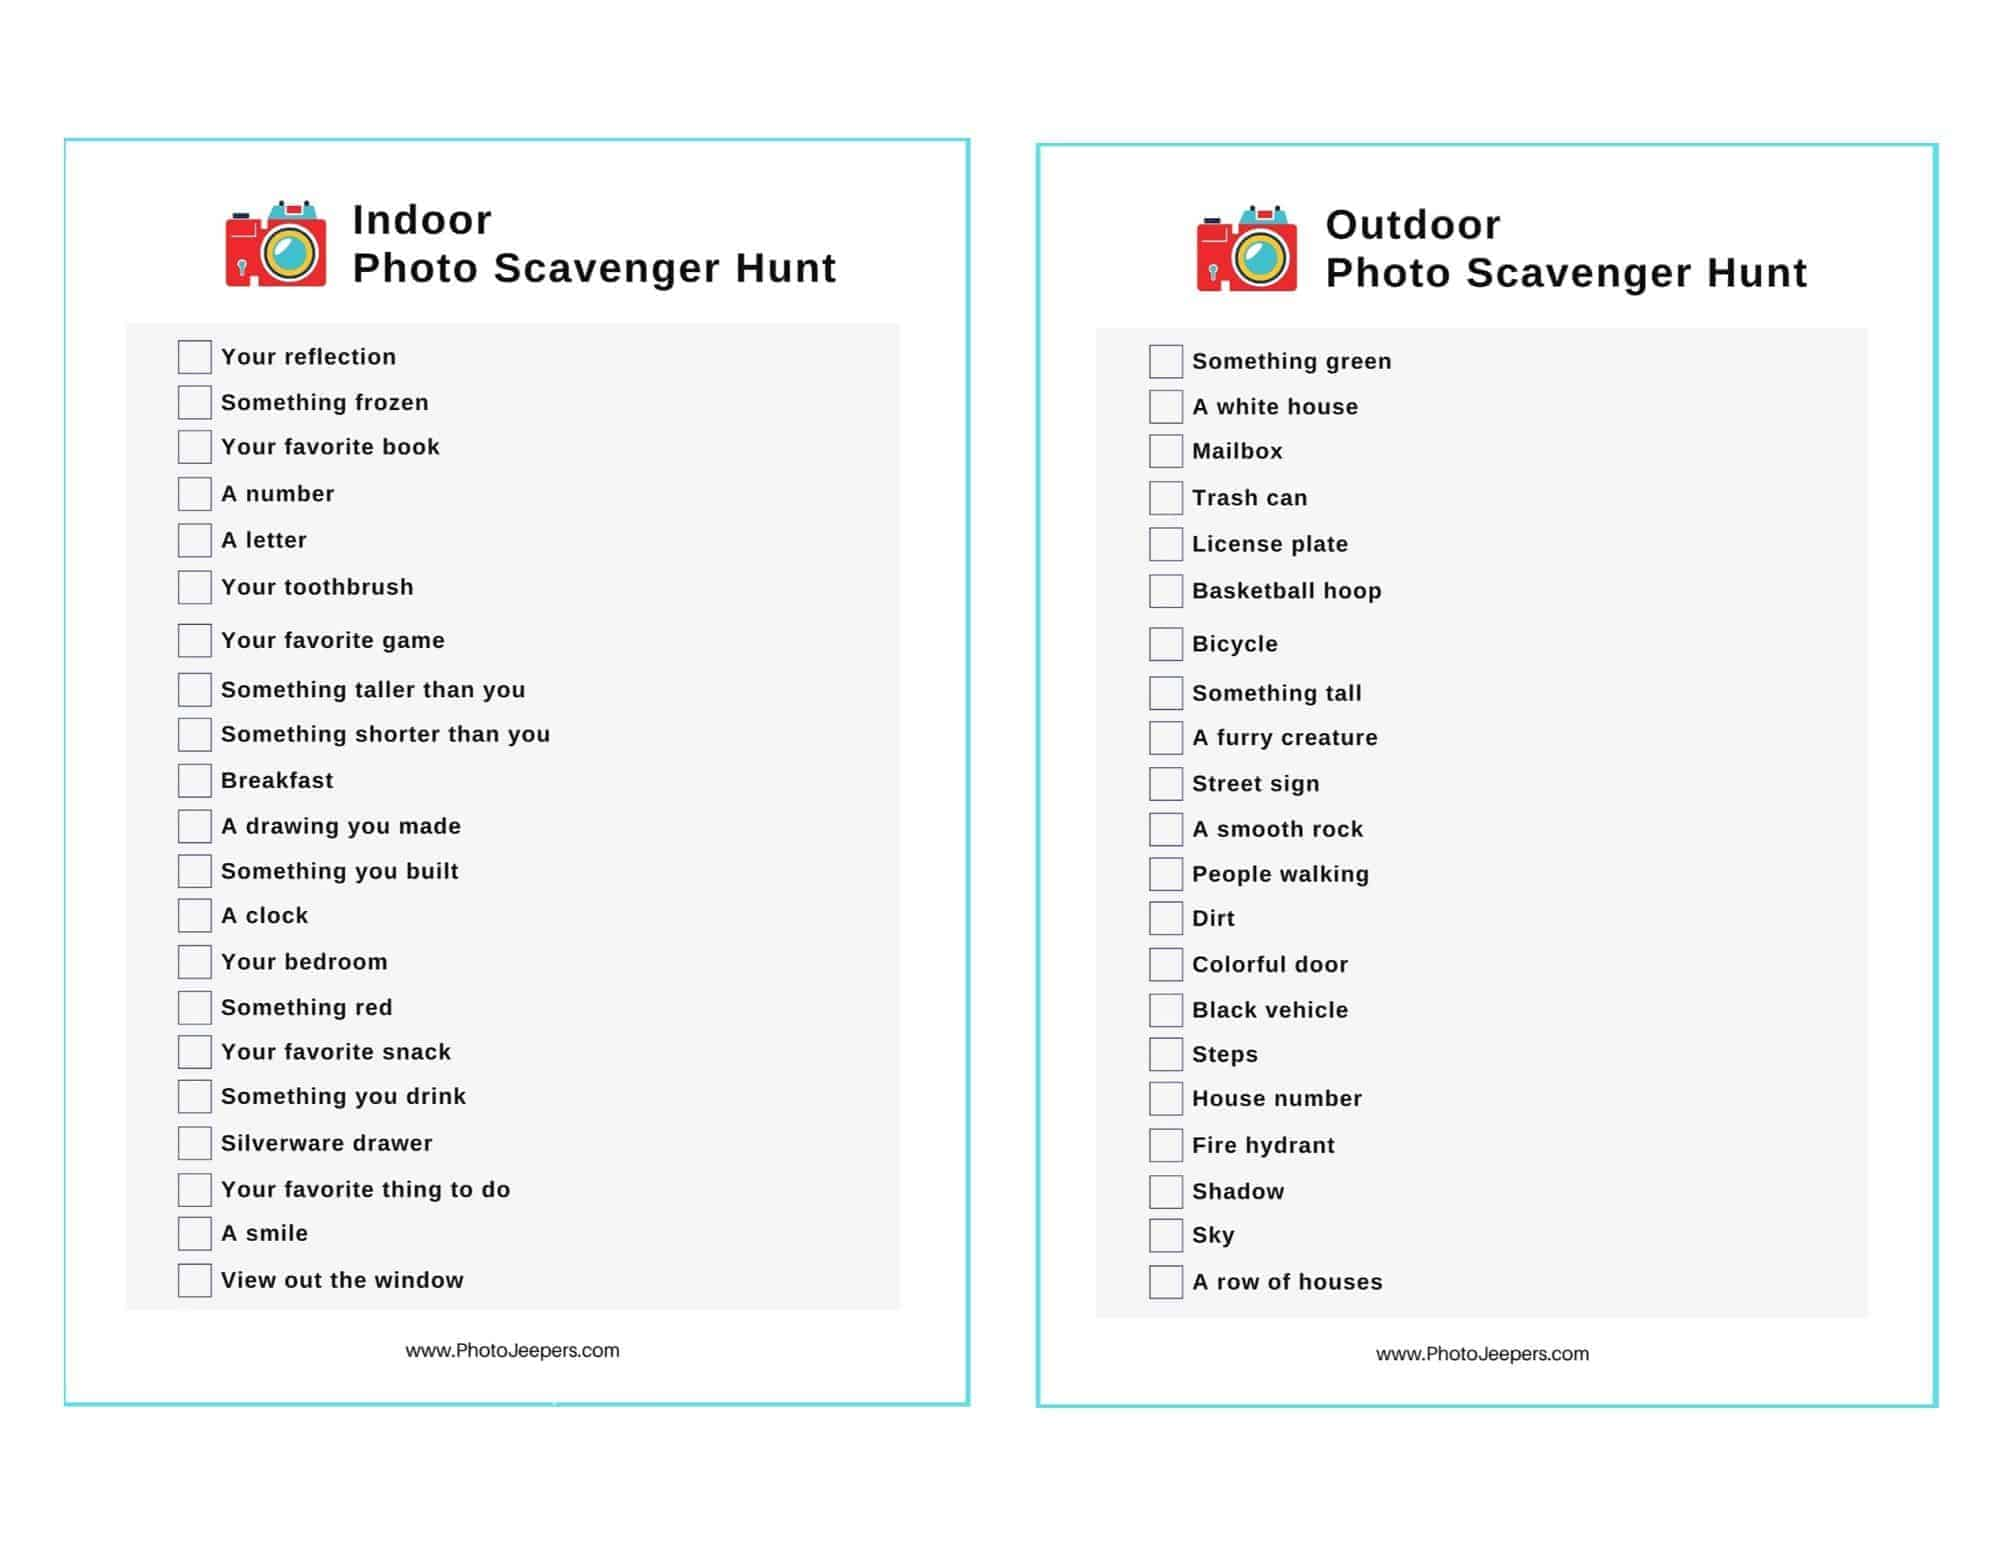 Indoor and outdoor photo scavenger hunt checklist for kids